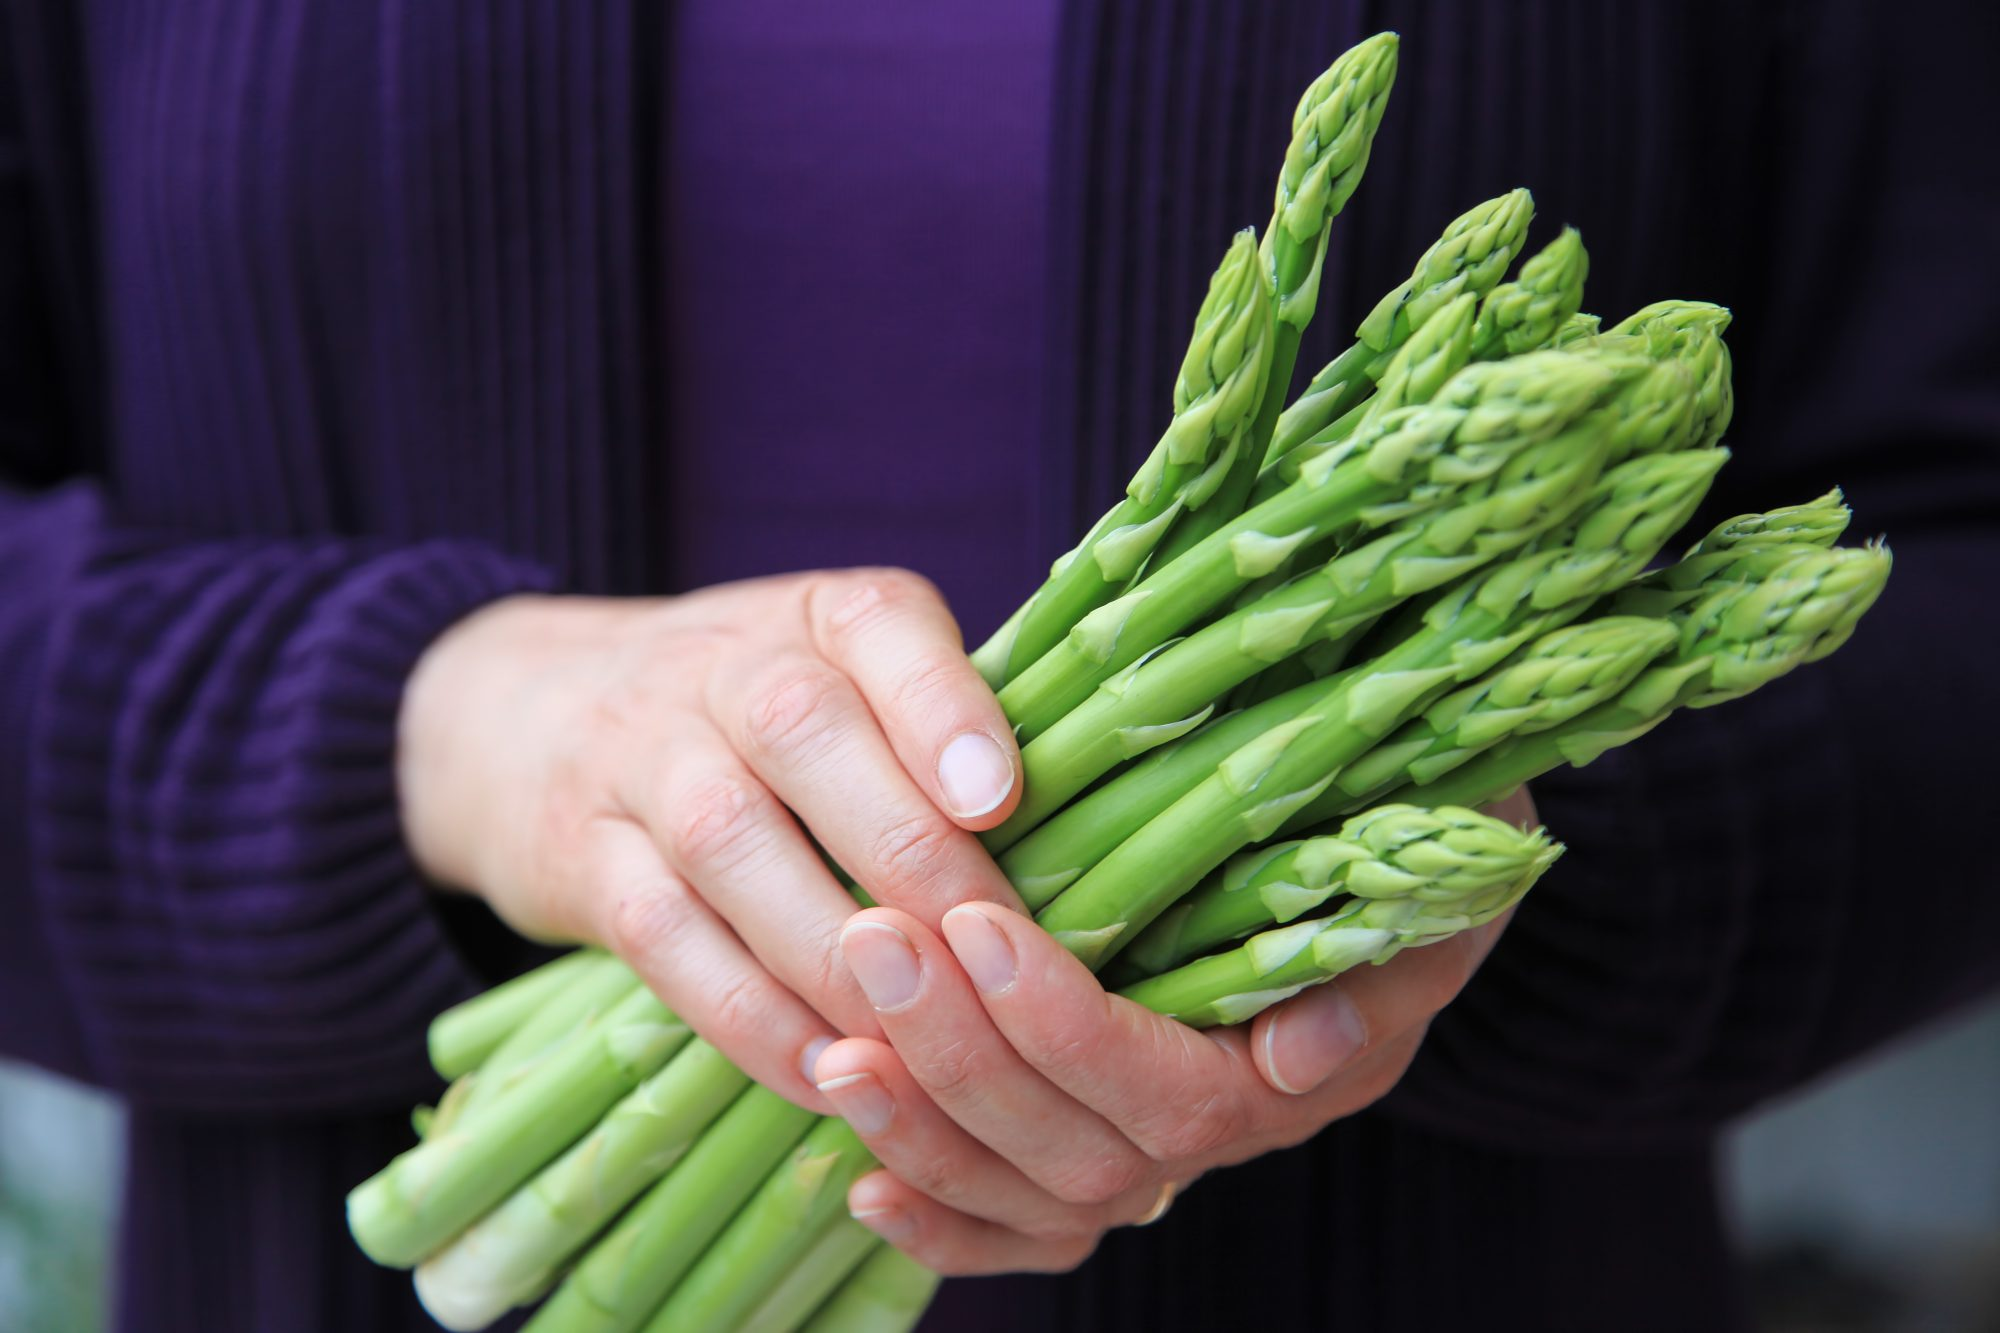 Asparagus in Hands Getty 4/22/20